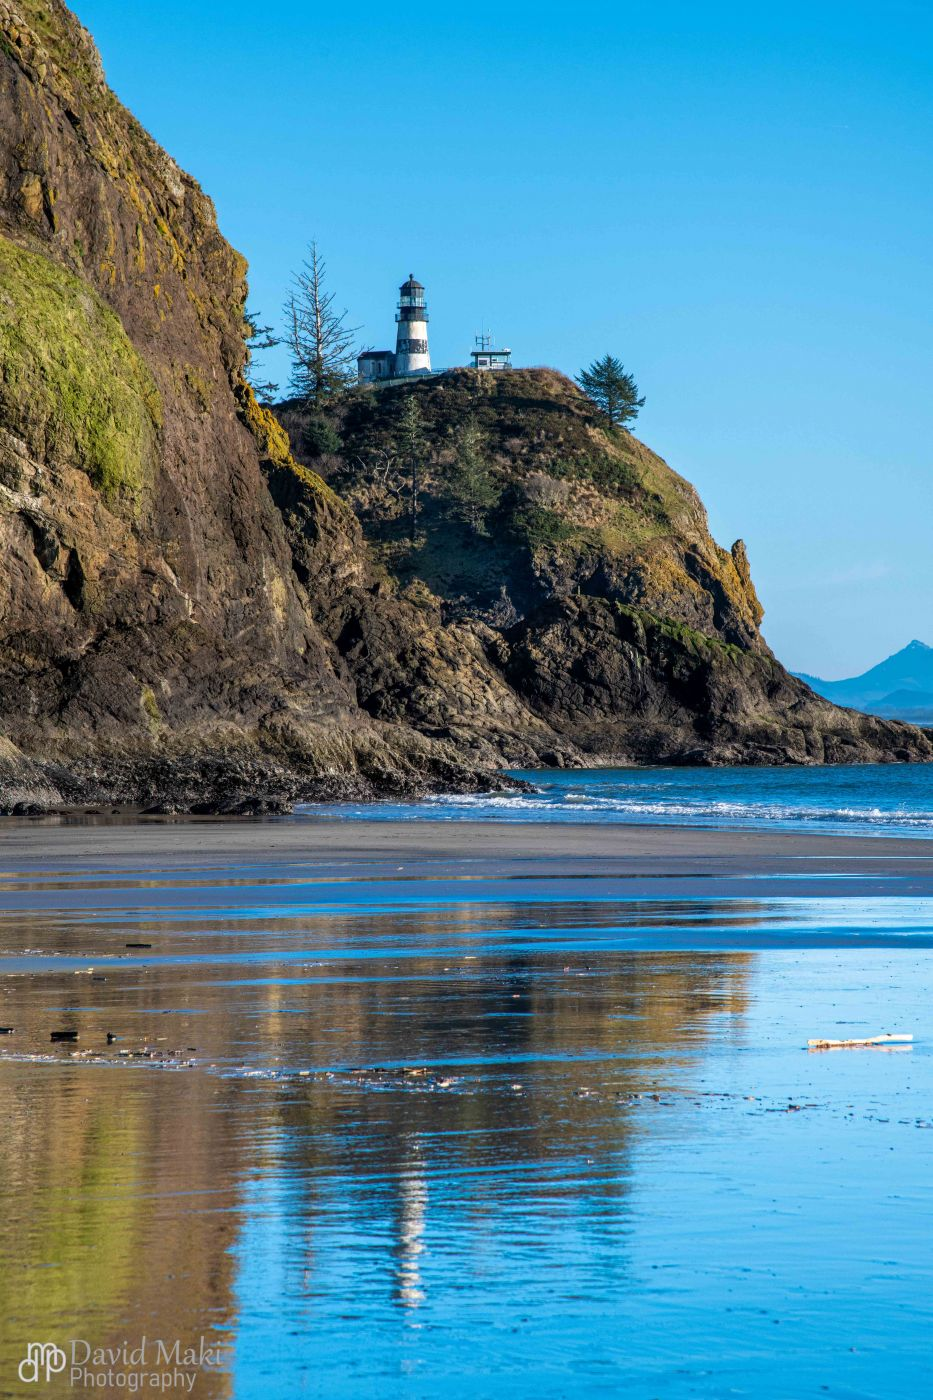 Cape Disappointment Lighthouse, USA